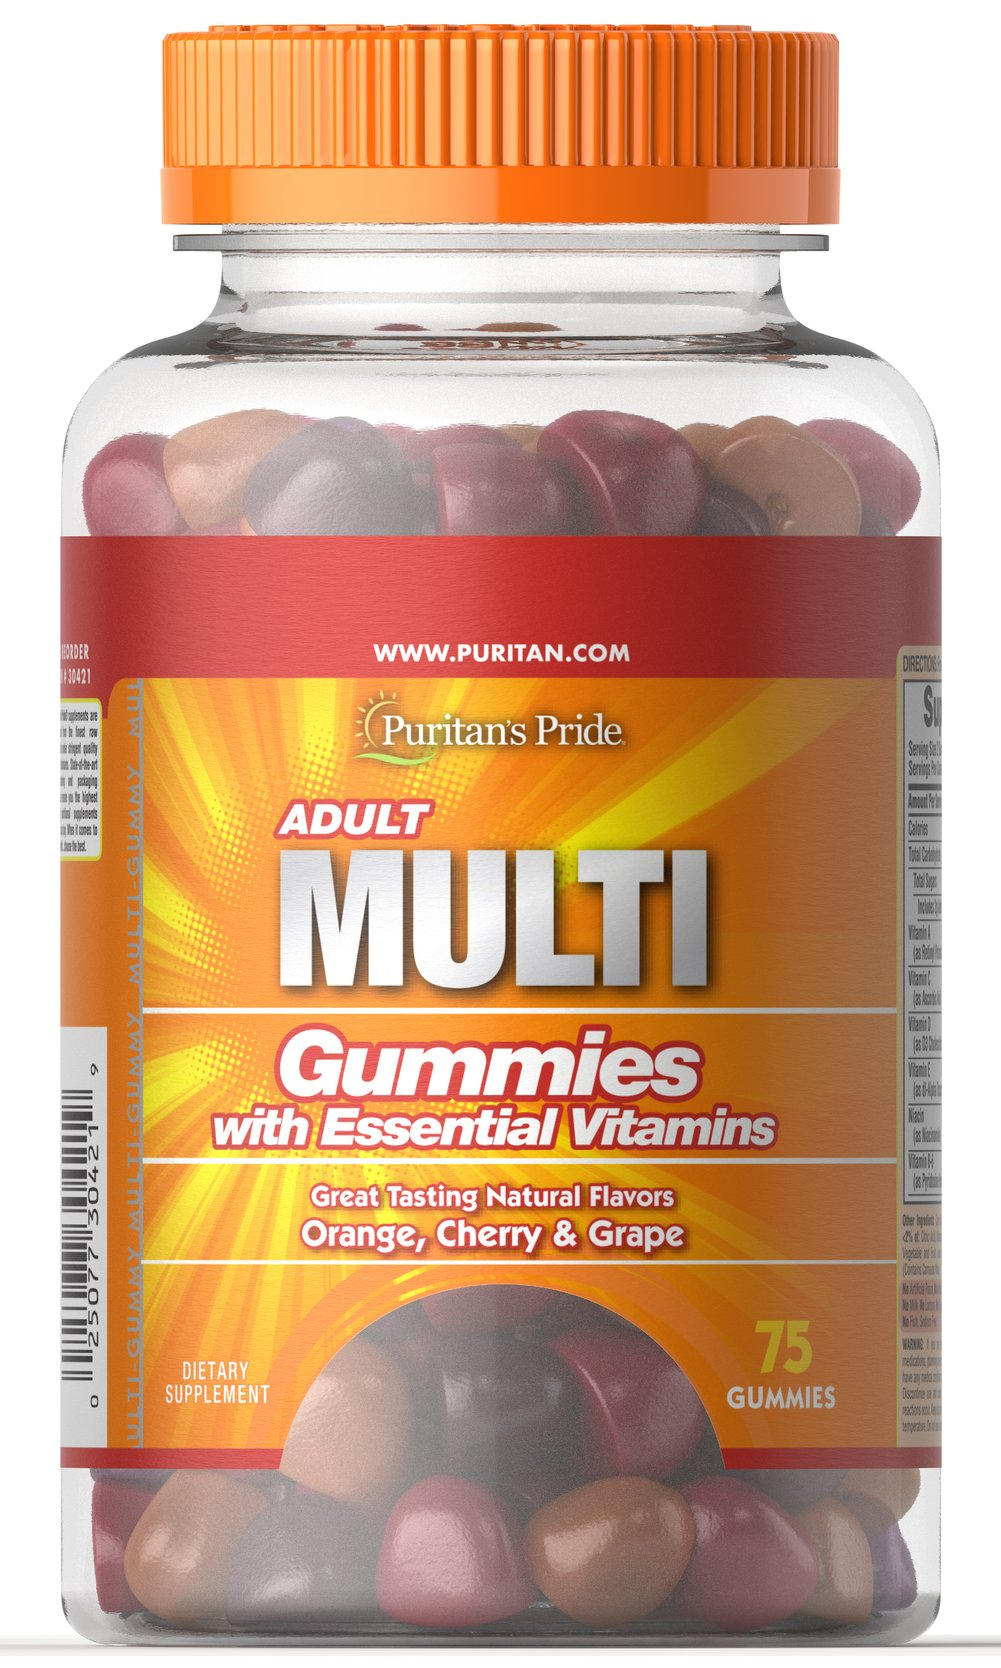 Adult Multivitamin Gummy  75 Gummies  $10.99